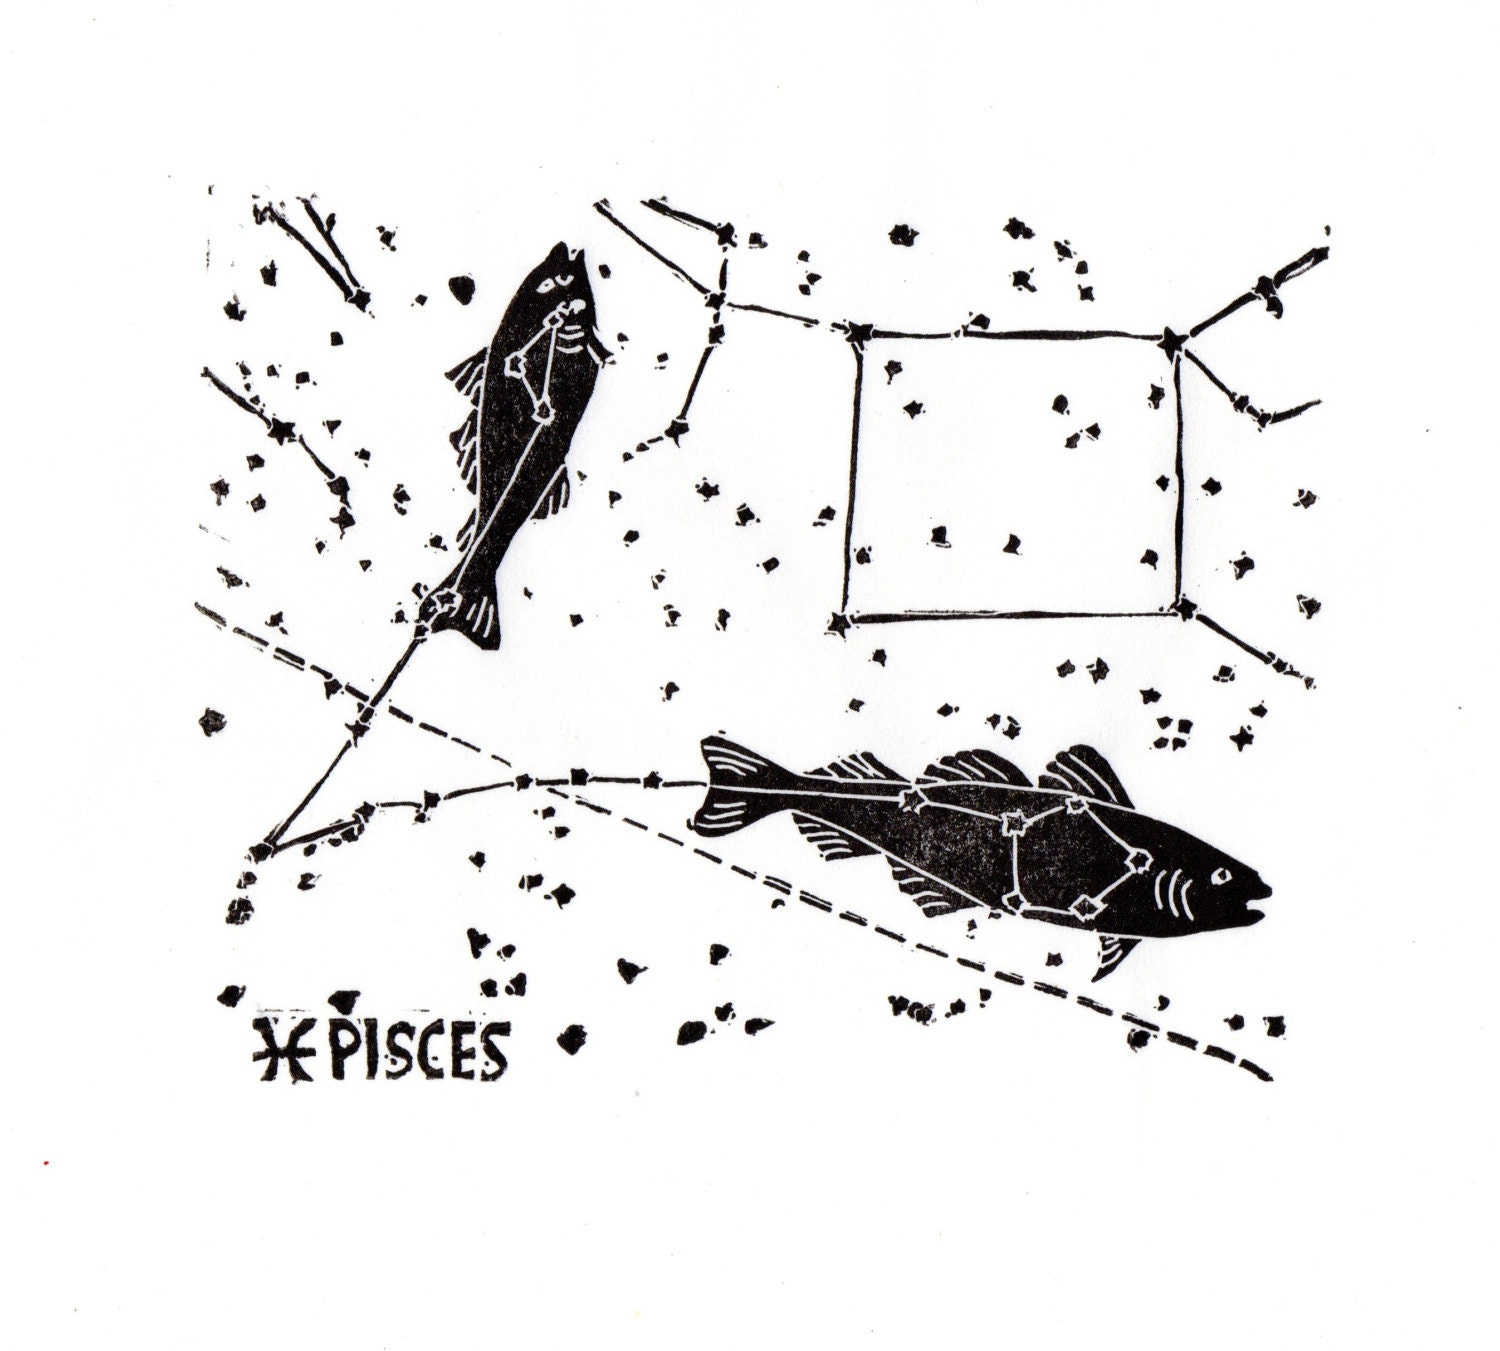 Pisces Constellation Linocut in Black and White